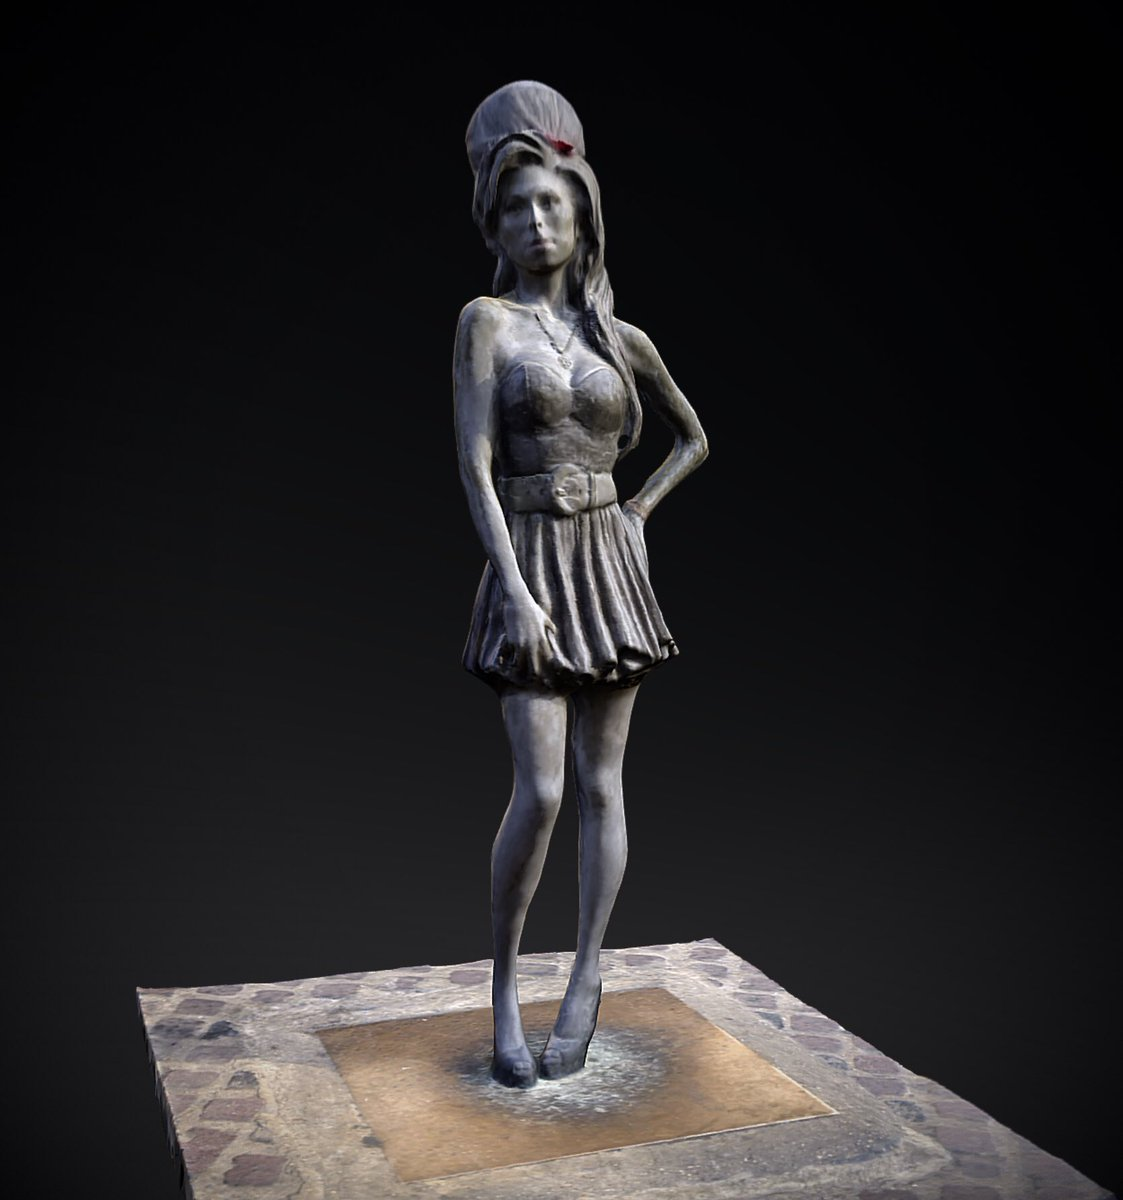 Legendary soul singer #AmyWinehouse was born #OTD in 1983. This #sculpture in #CamdenTown by artist @_ScottEaton_ was unveiled 5 years ago today to honour Amy's amazing music career. You can now interact with our #3D scan of her statue in #3D, #VR & #AR at http://skfb.ly/6MoRJ